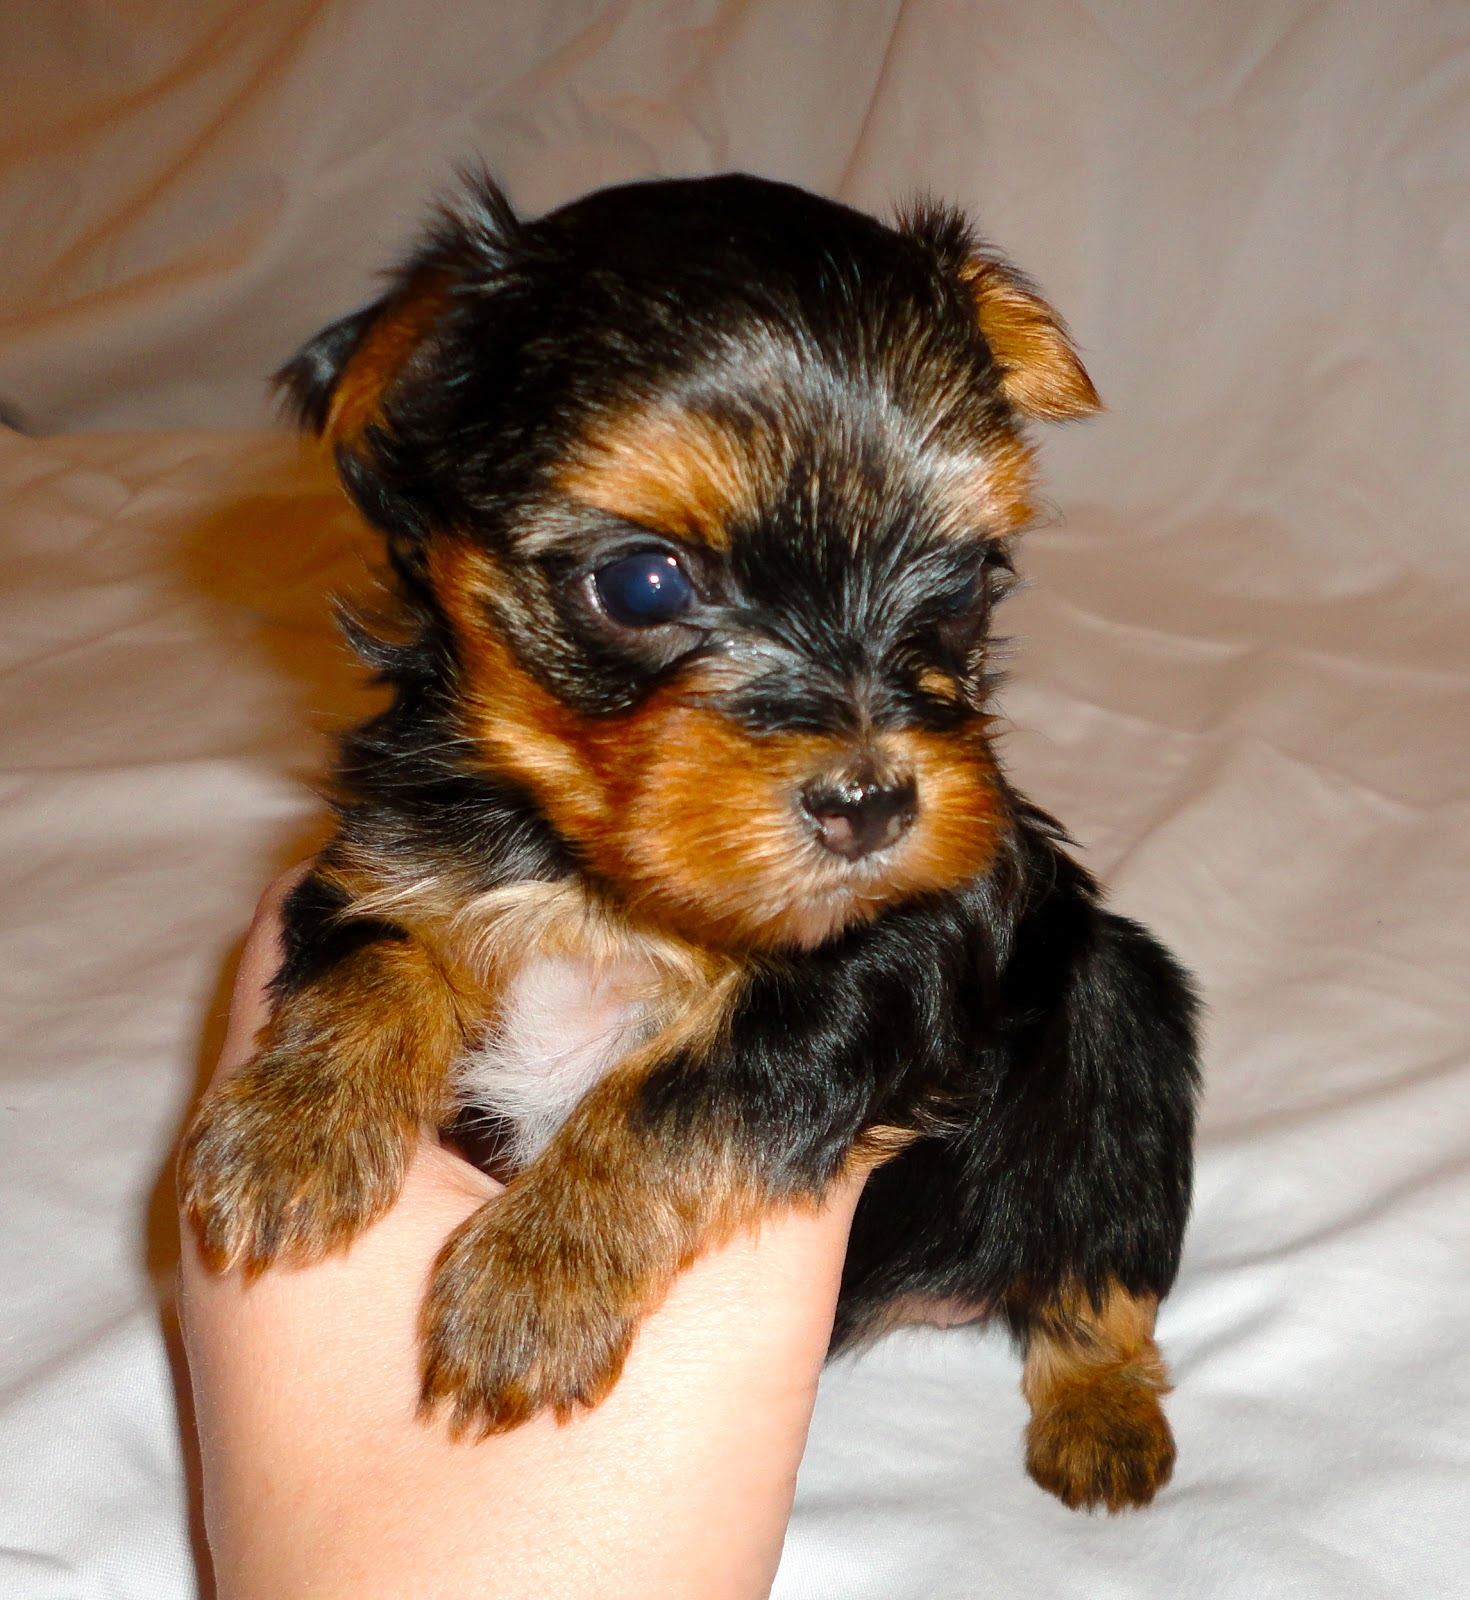 Dog Wallpaper Pictures Of A Baby Week Old Yorkie Puppies Hd Wallpaper